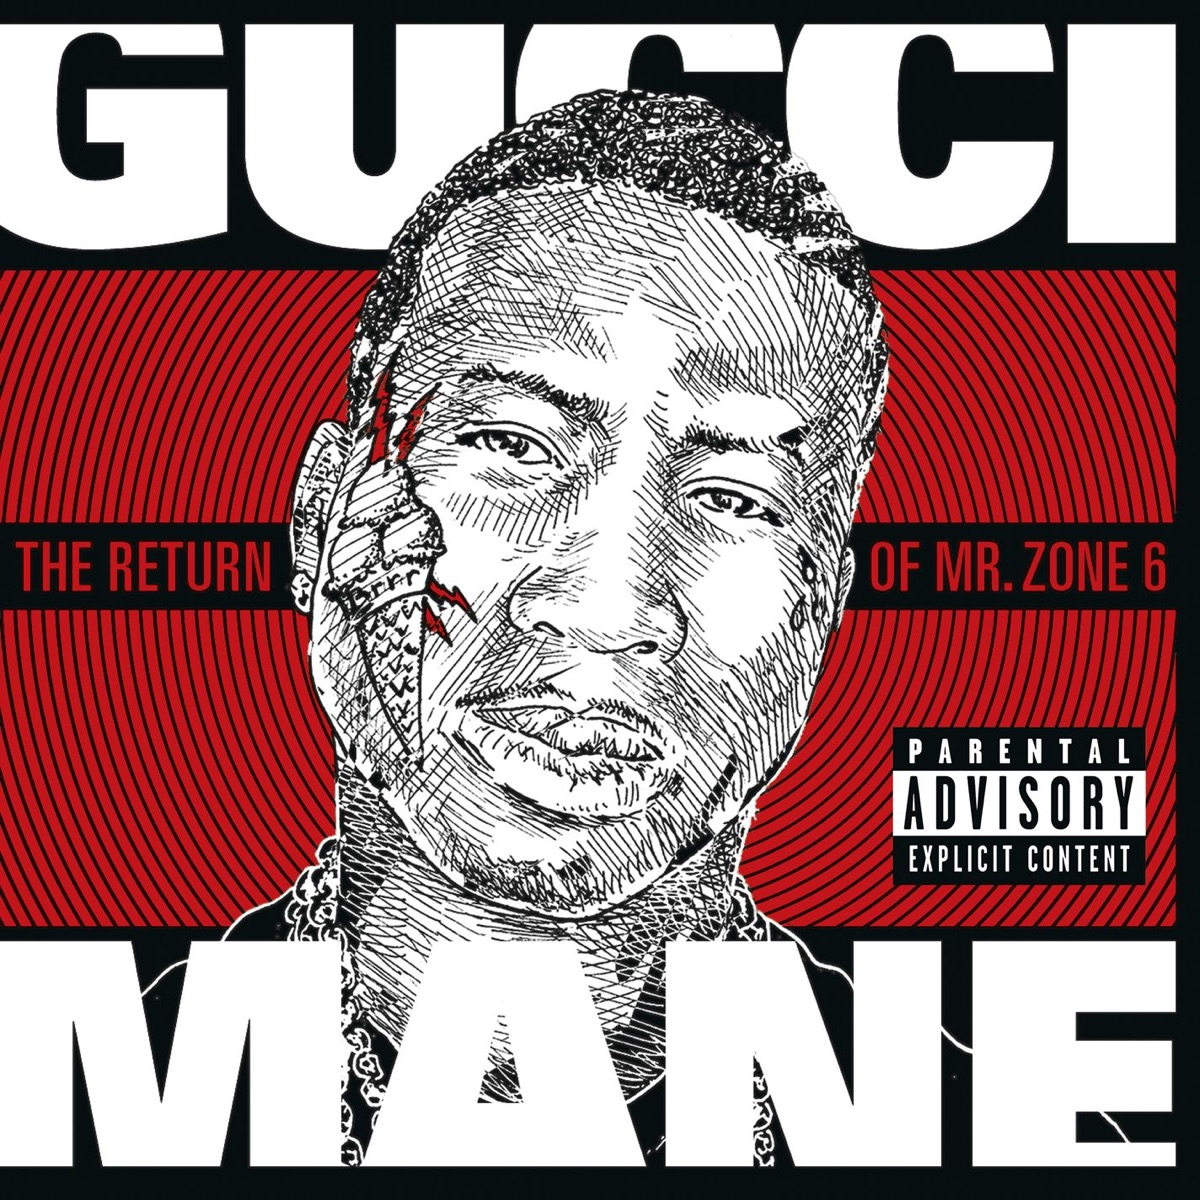 The Return of Mr  Zone 6 Album Cover by Gucci Mane